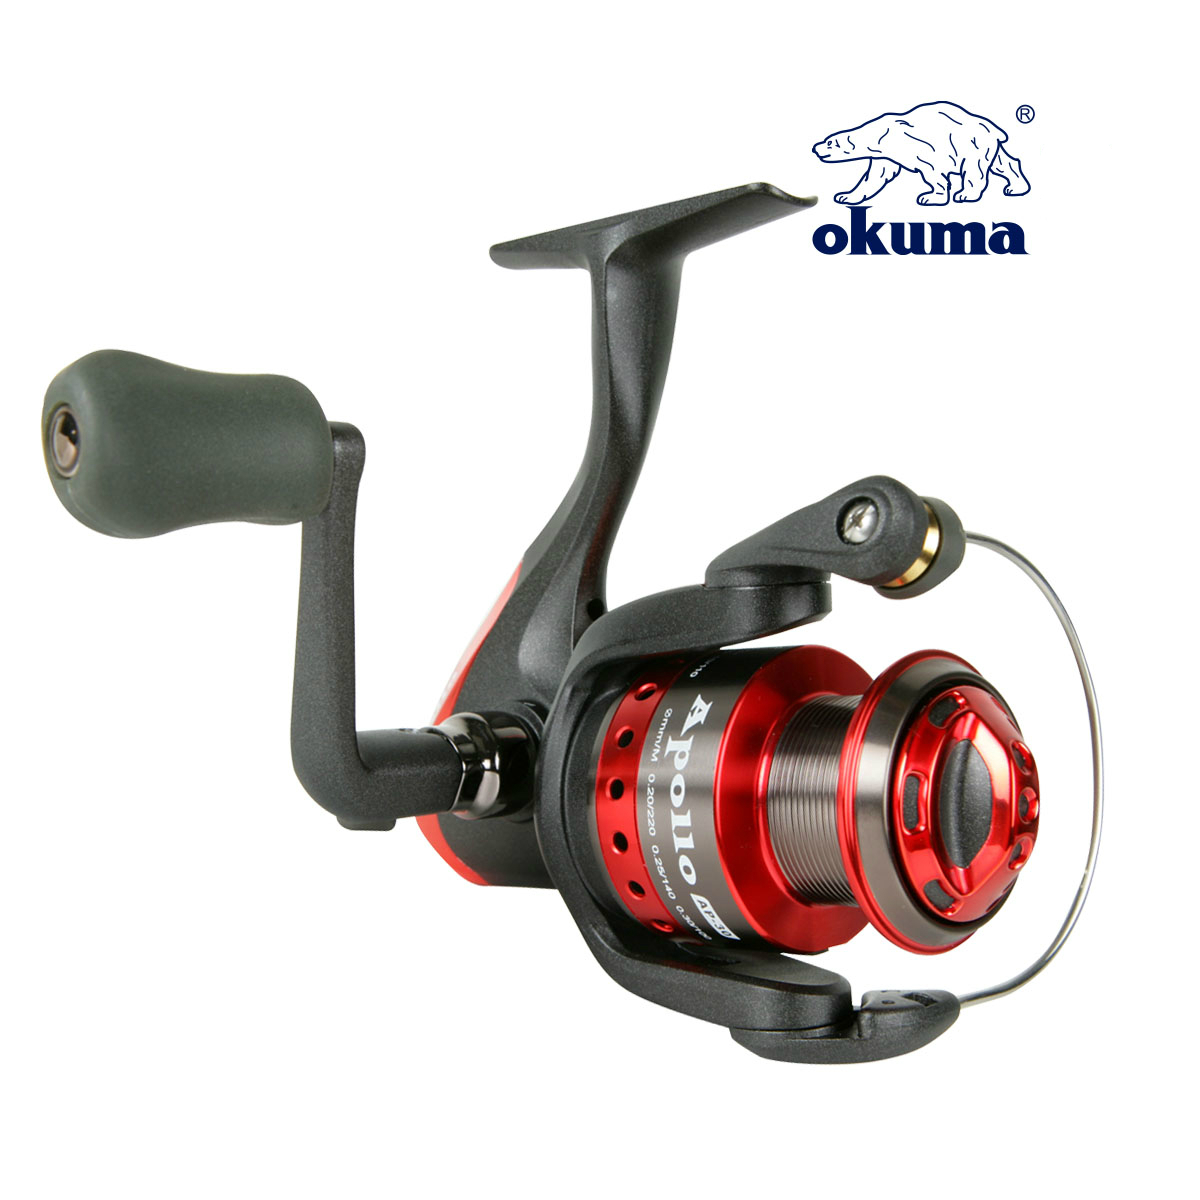 Okuma Apollo APII-40 Fishing Reel Spinning Reel 4000 Series Gear Ratio 5.0:1  Bearing 5+1 Lure Reel Sea River Fishing Tackle dream m19 multifunctional opie fishing reel bag fishing bags pole tackle military lure reel backpack fishing gear 33 13 23cm